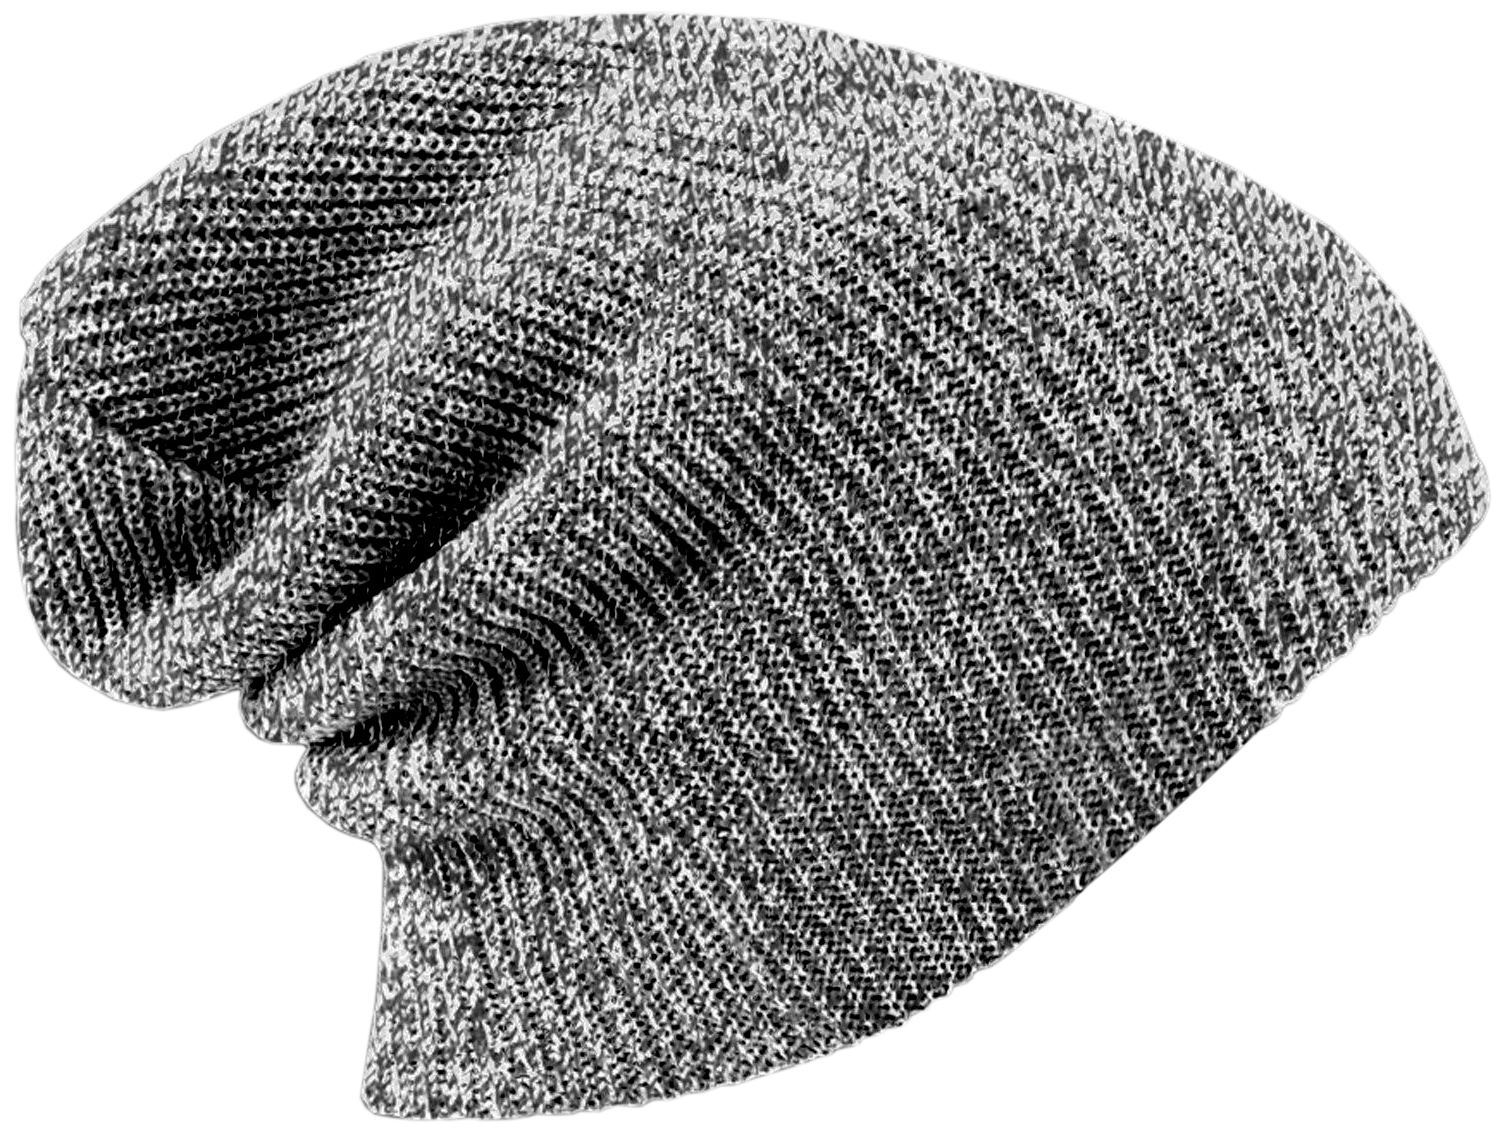 Unisex Men Women Knitted Floppy Slouch Beanie Hat Chunky Outdoor Winter Cap ...